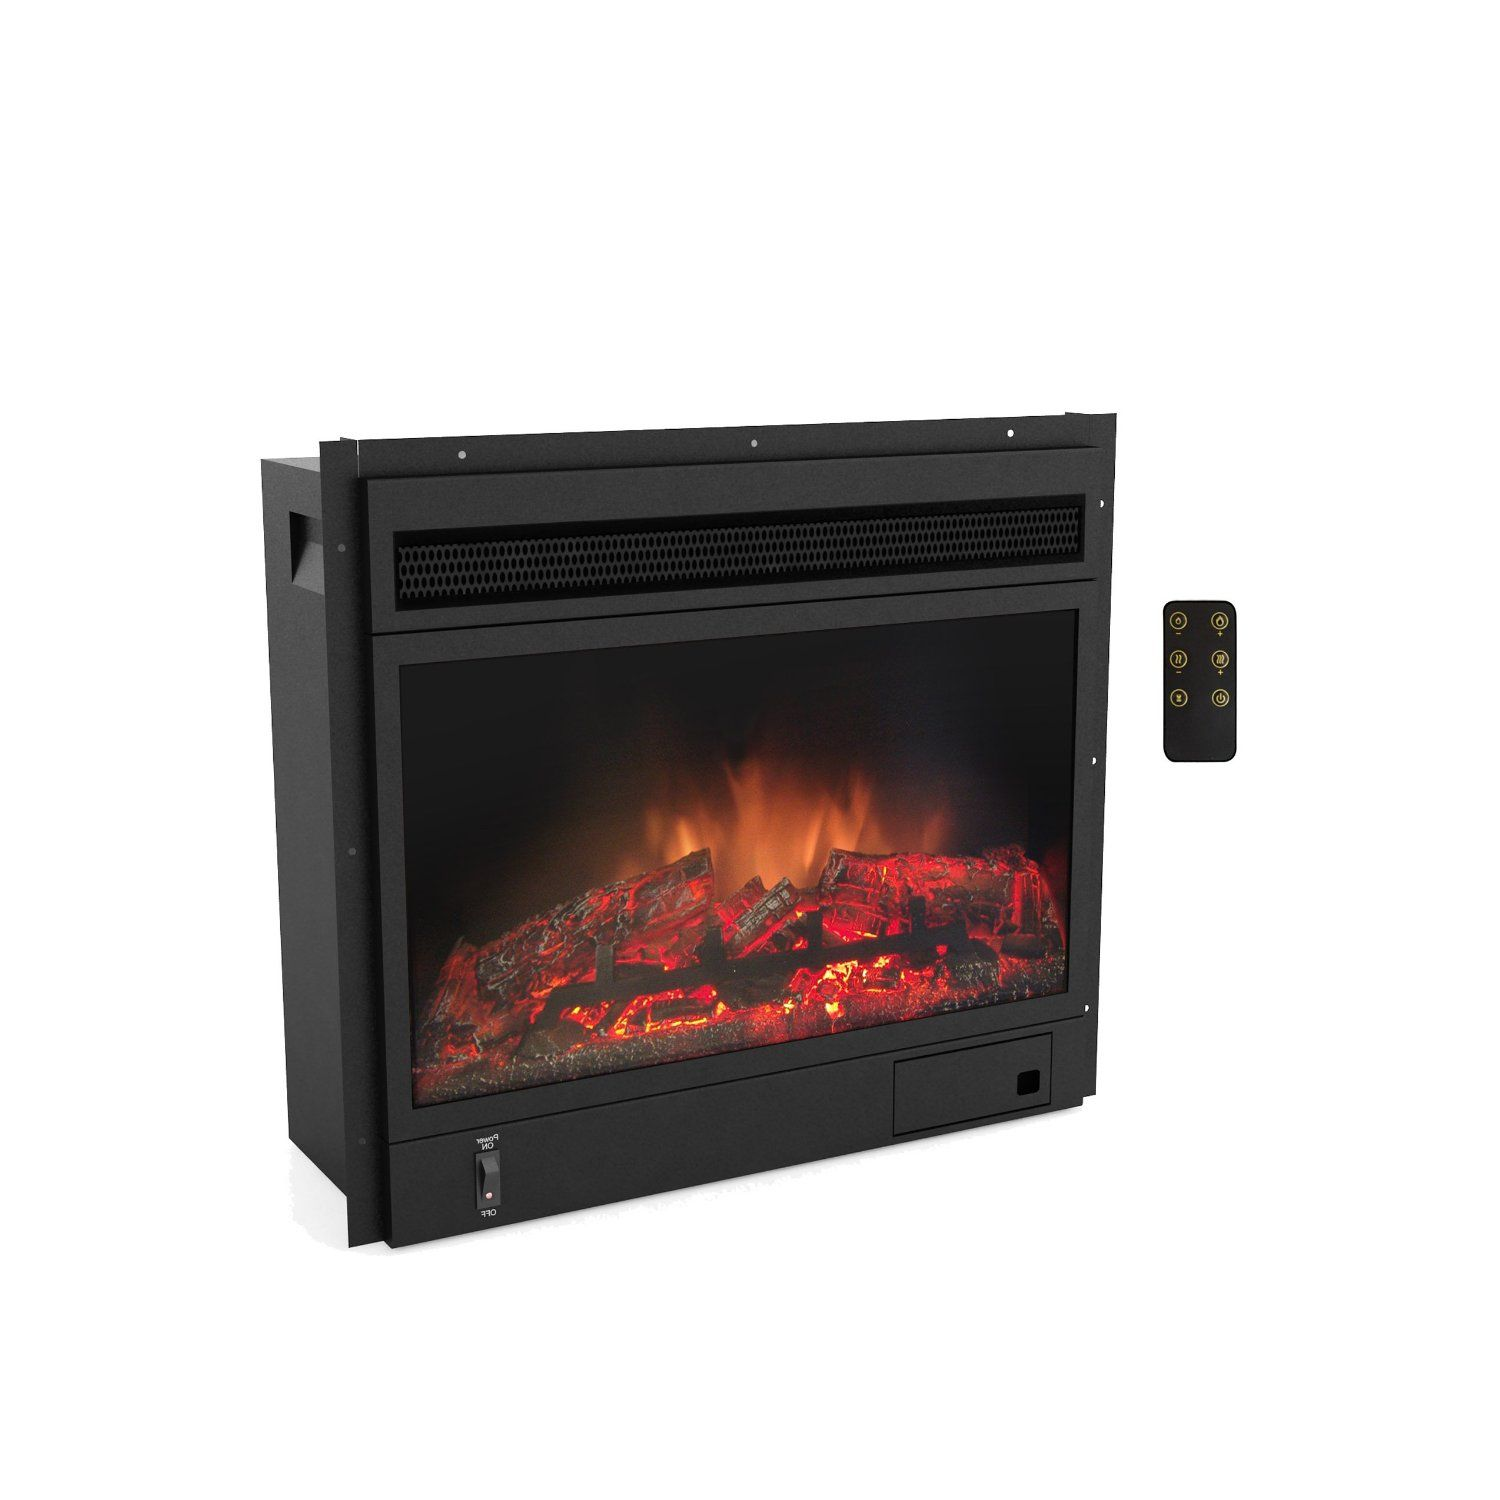 Amazon.com - CorLiving E-0001-EPF Sonax Electric Fireplace - Fireplace  Insert - Amazon.com - CorLiving E-0001-EPF Sonax Electric Fireplace